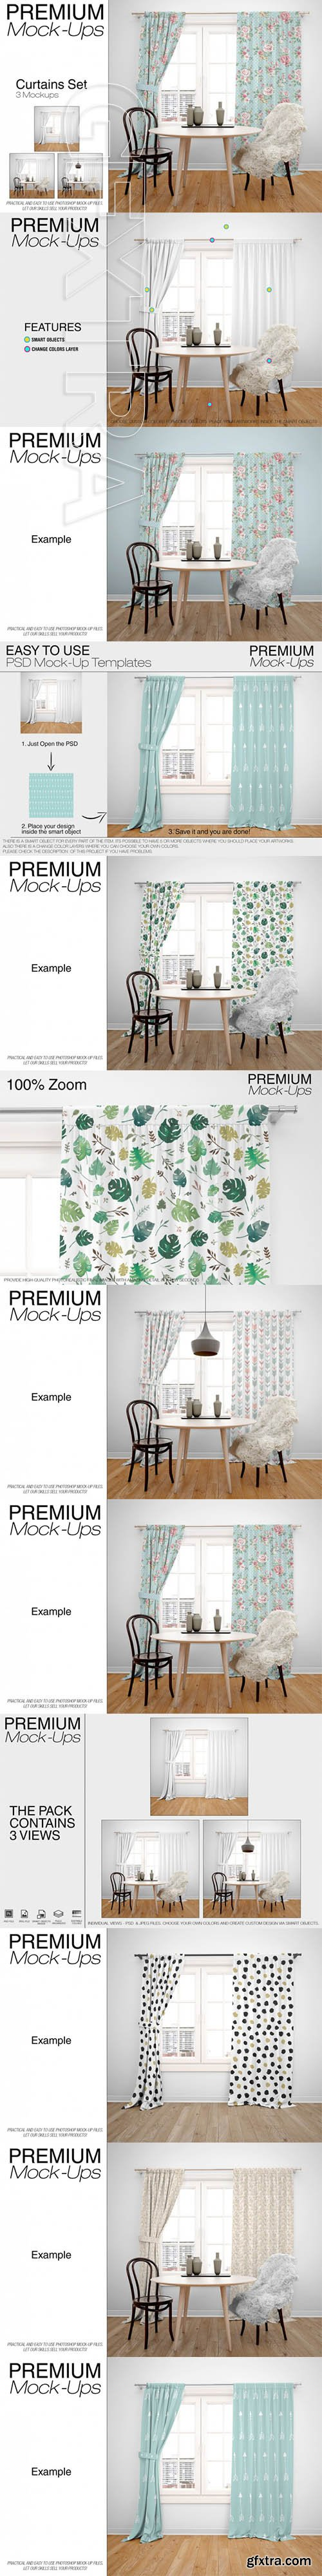 Curtains Mockup Pack 1